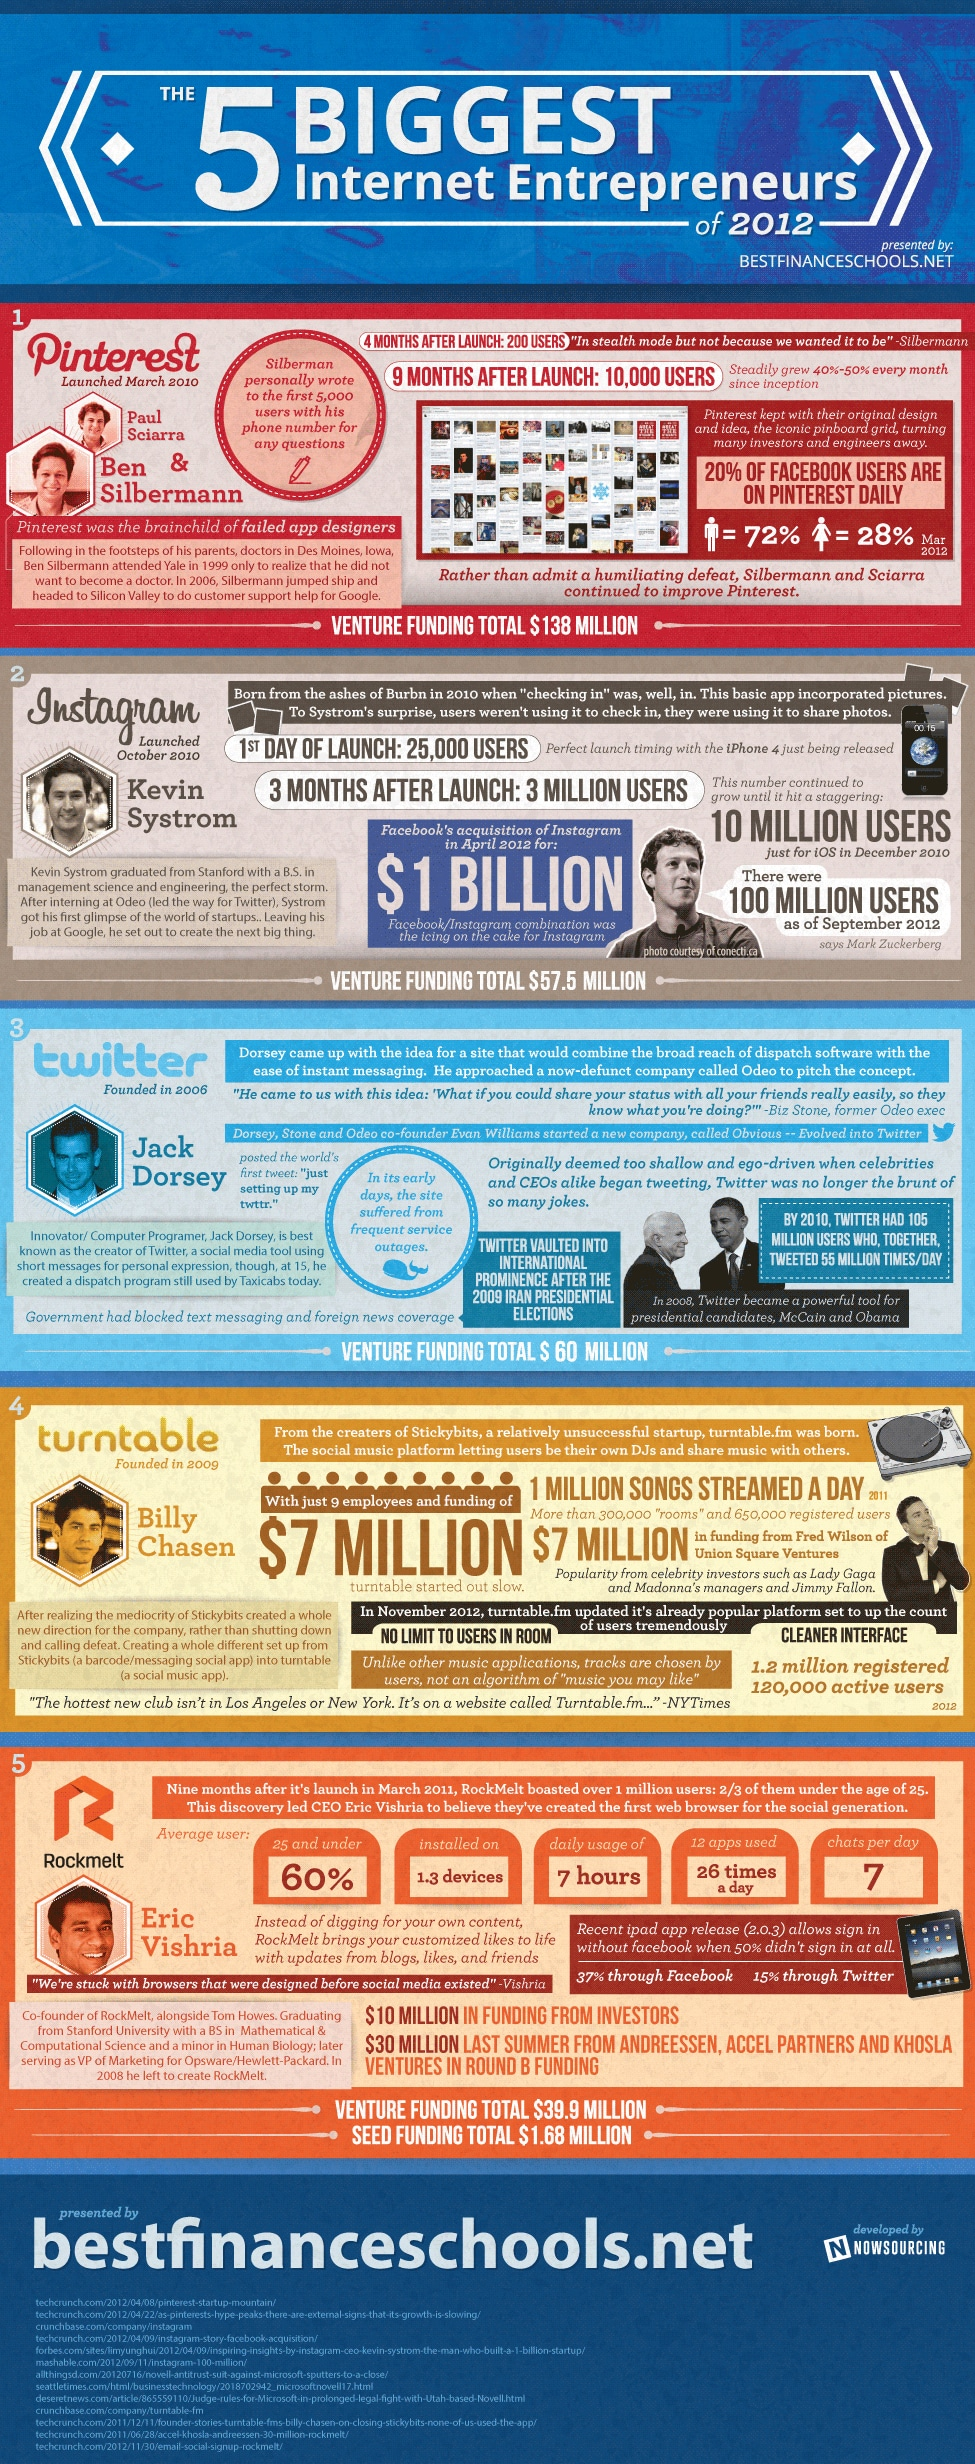 5 Most Successful Internet Entrepreneurs Of 2012 [Infographic]